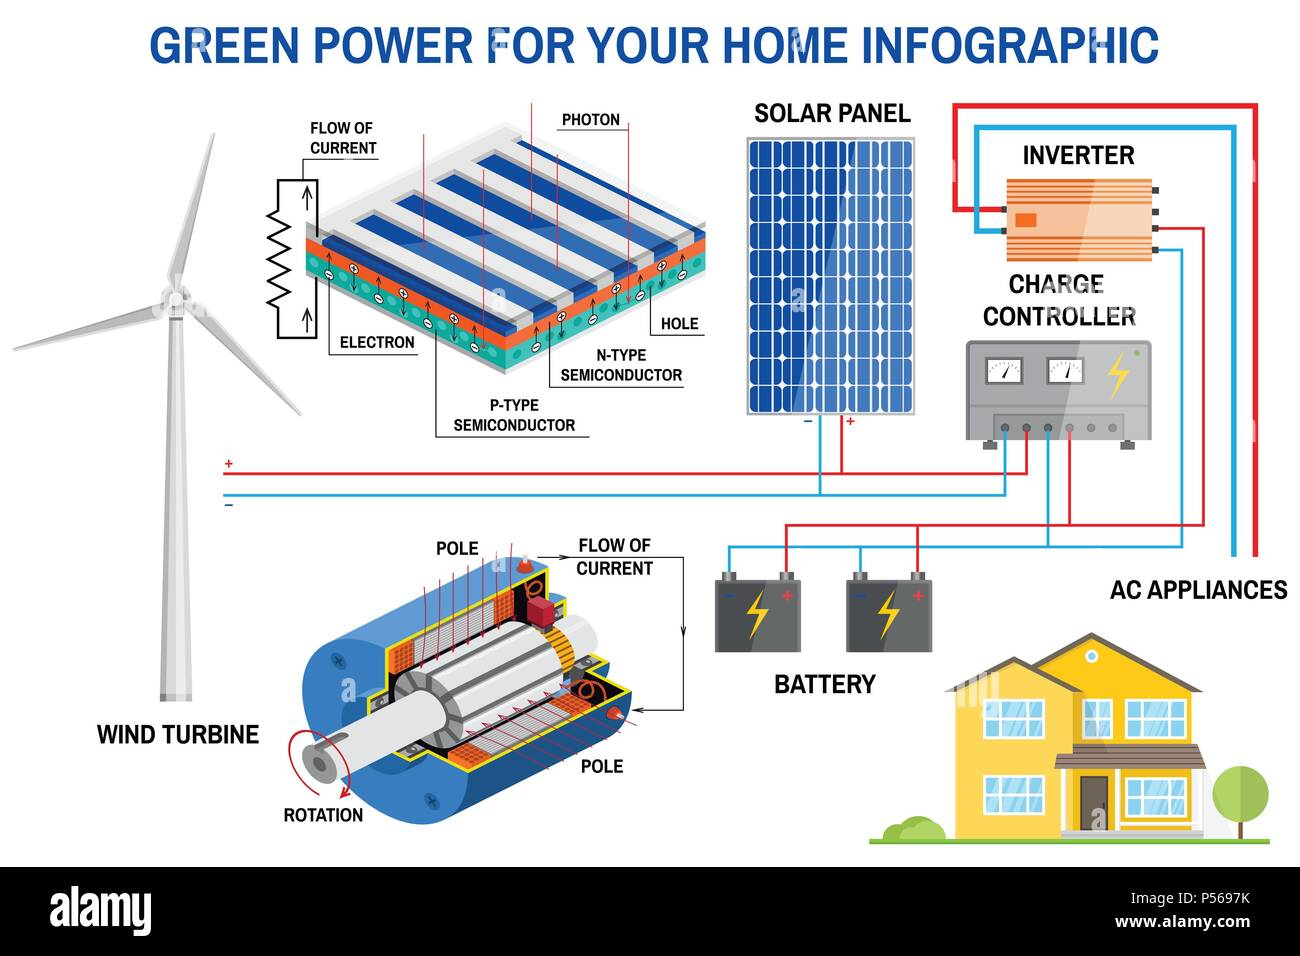 how to build solar power system for your home